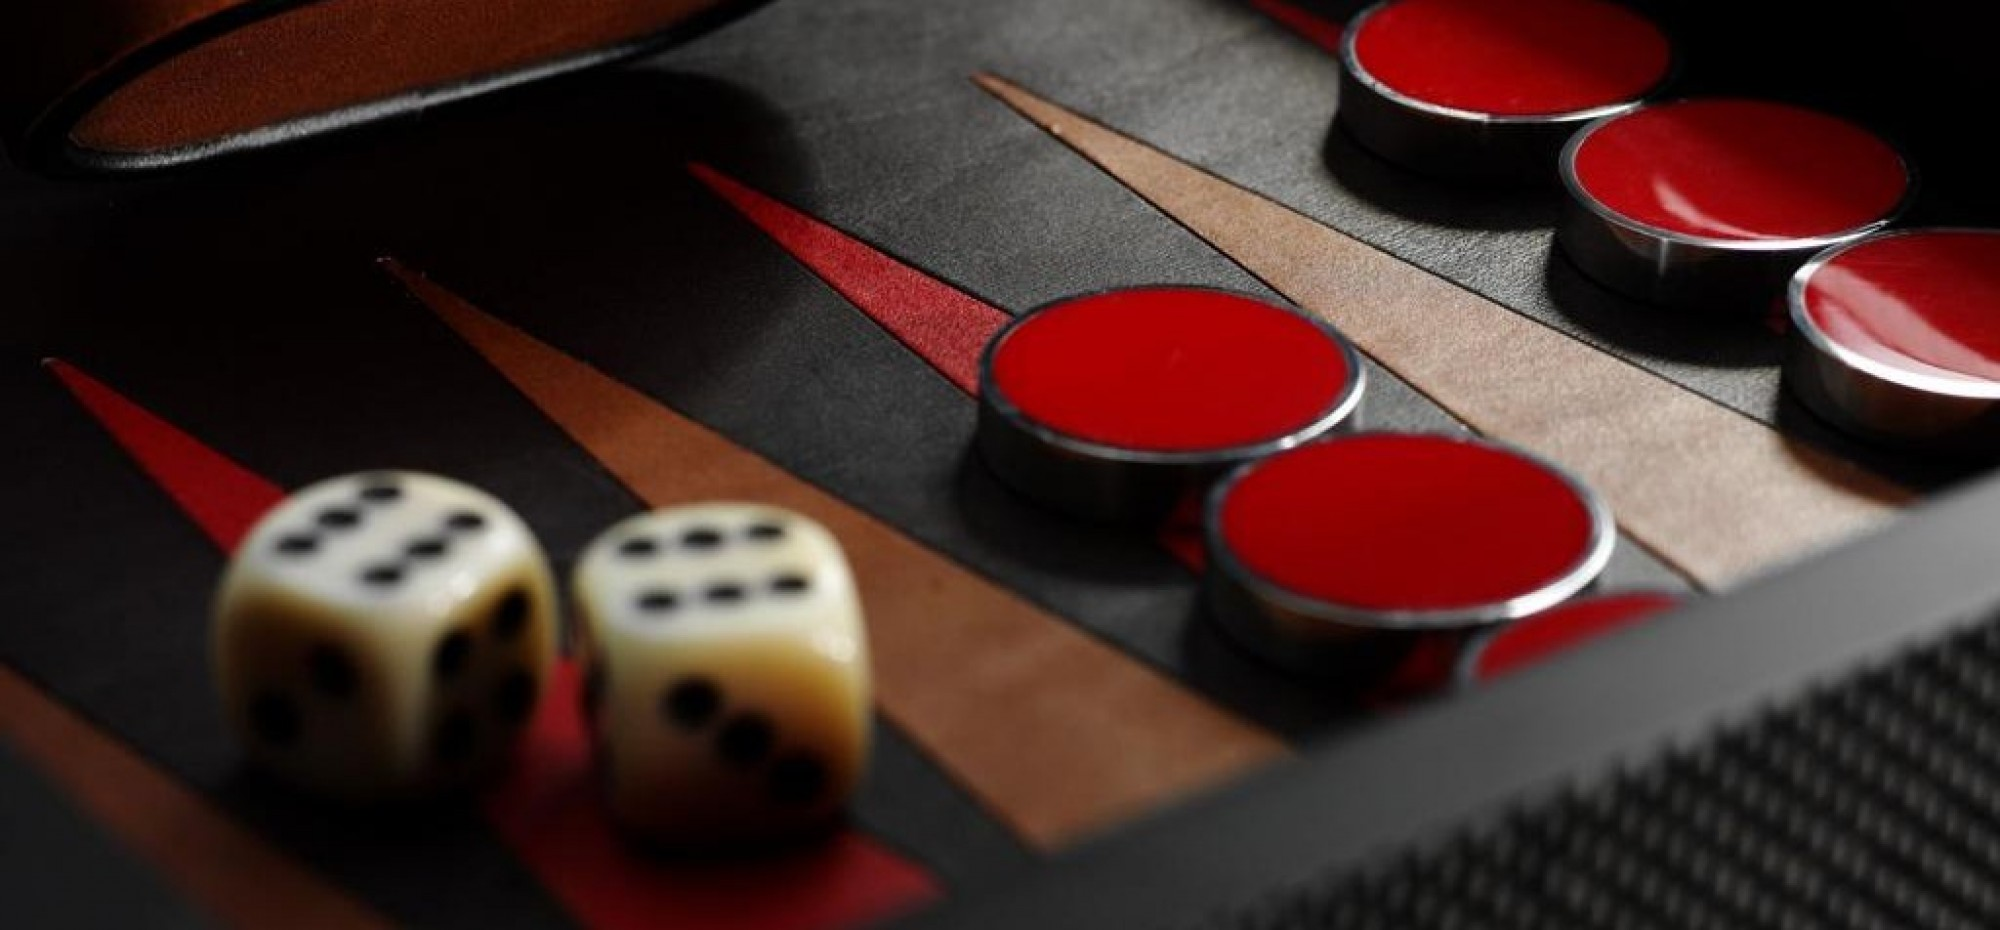 Join the top Backgammon players around the world